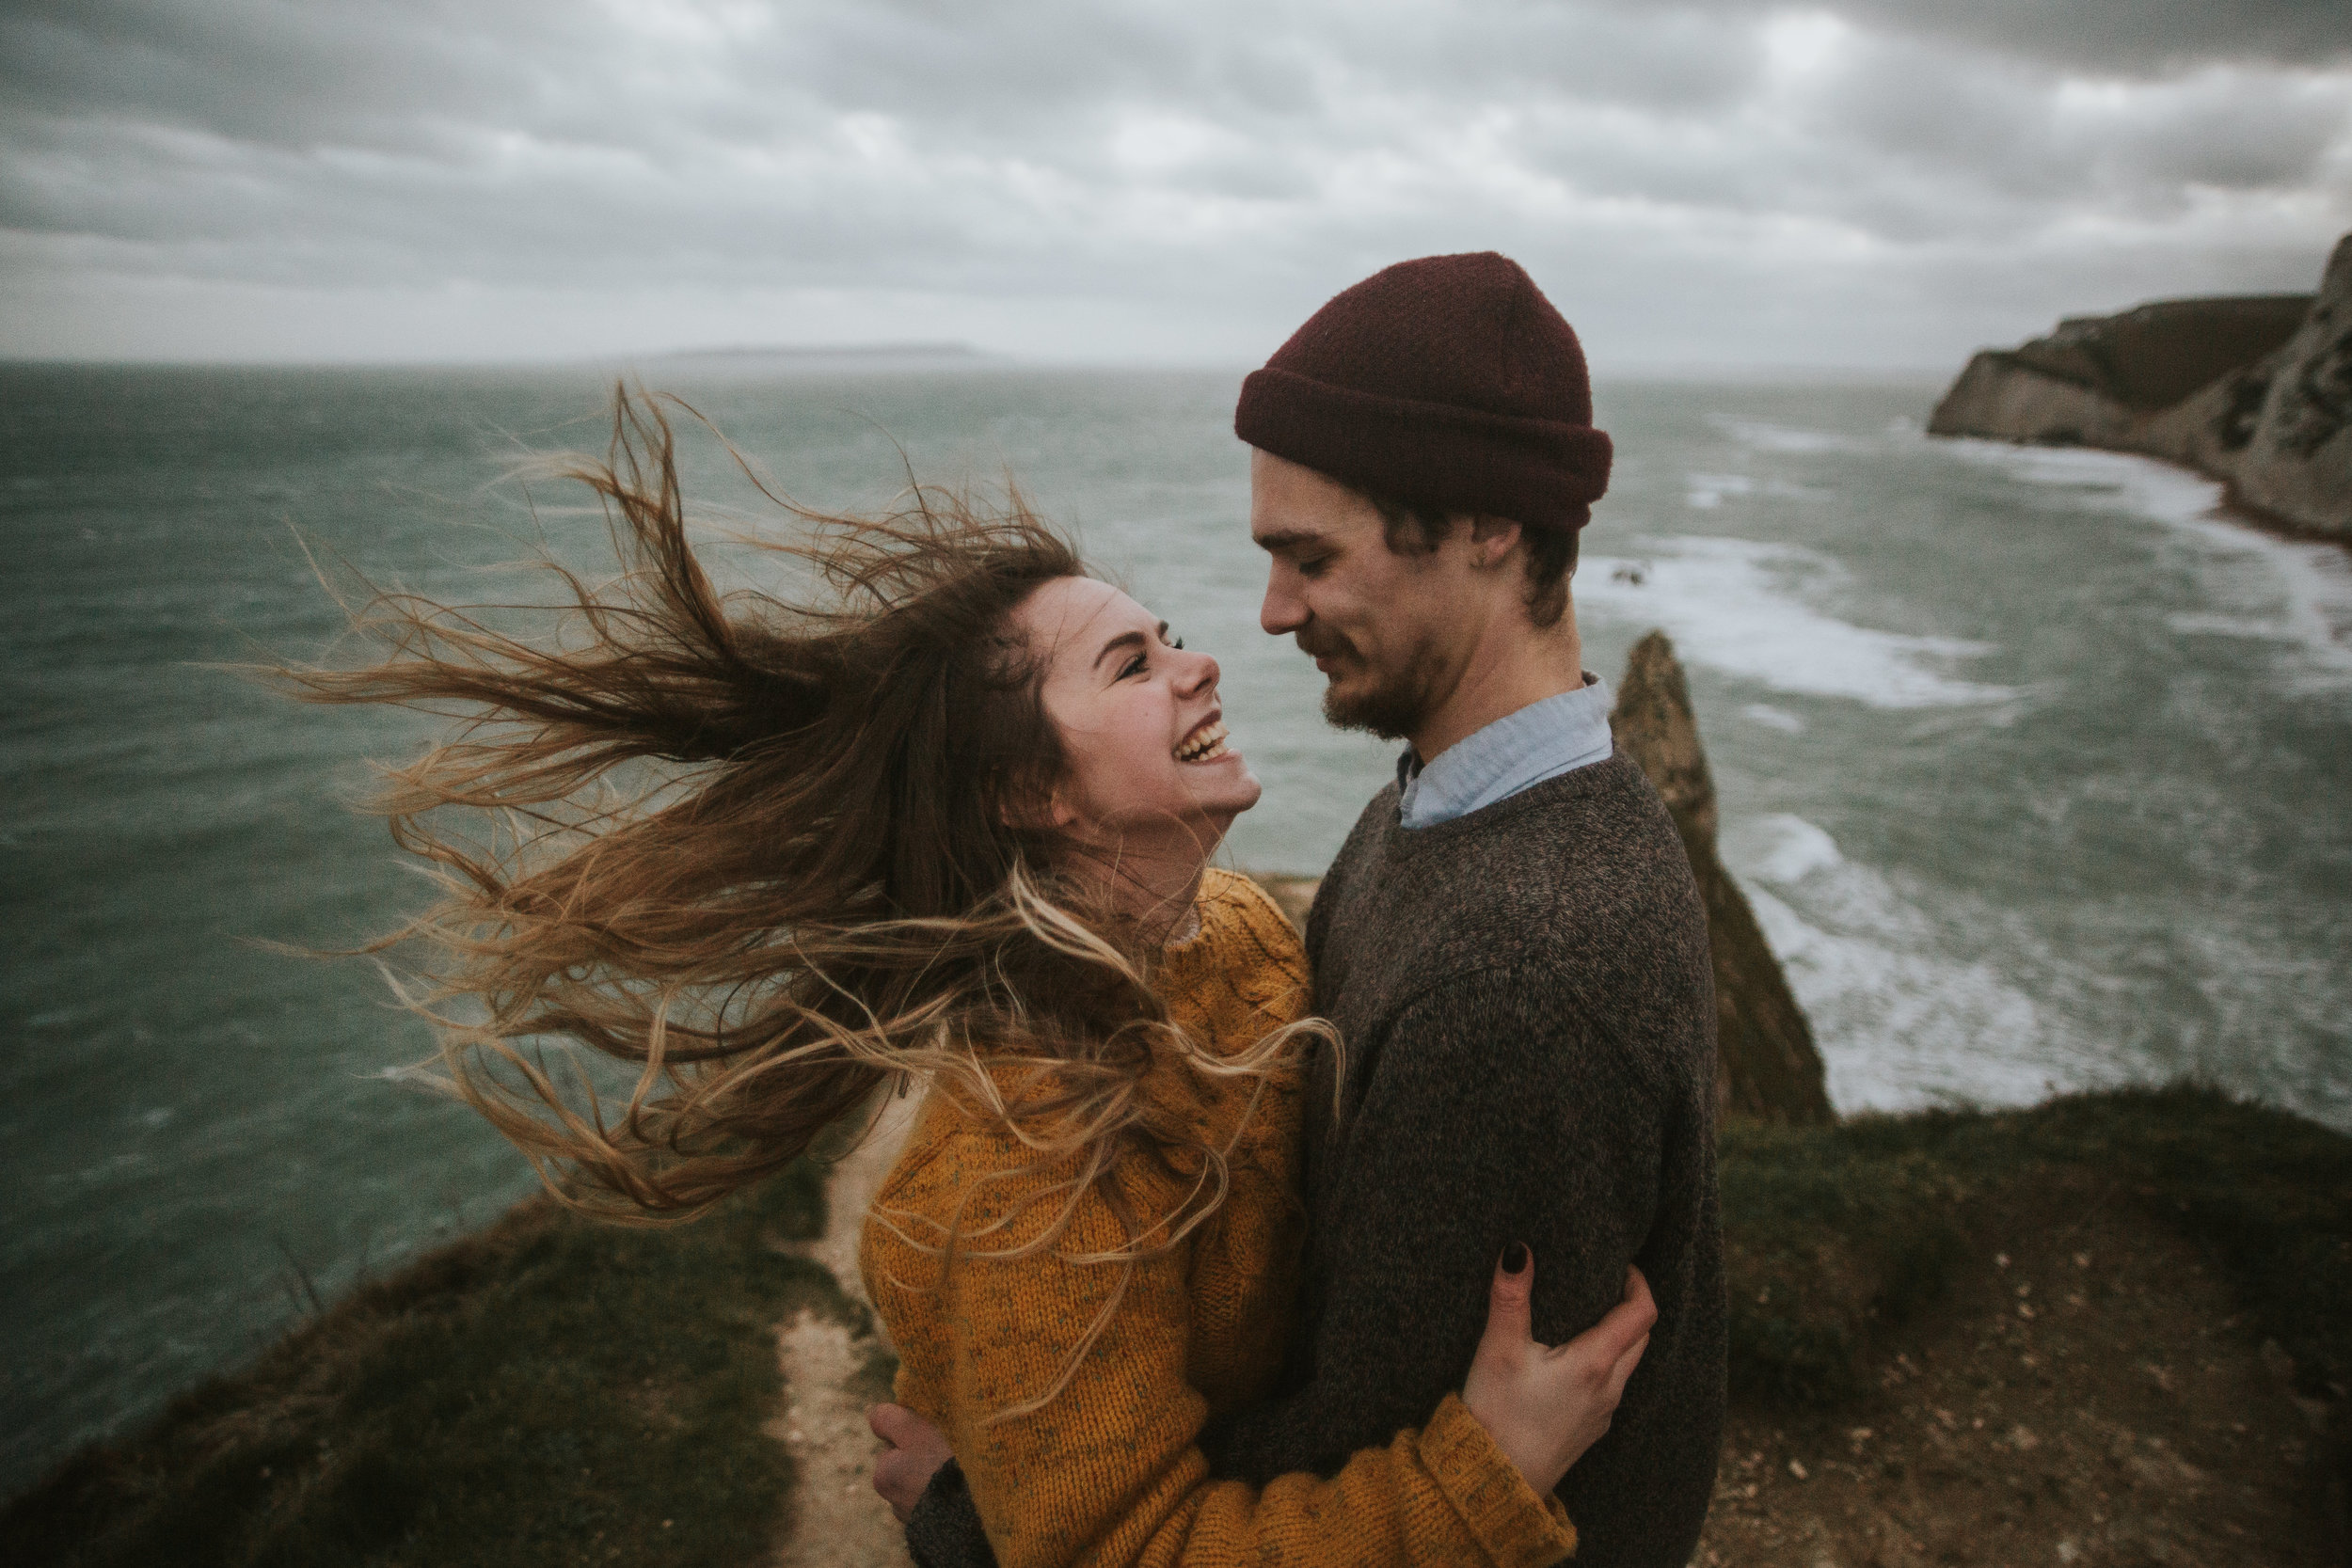 WINDY ENGAGEMENT SHOOT Crazy hair